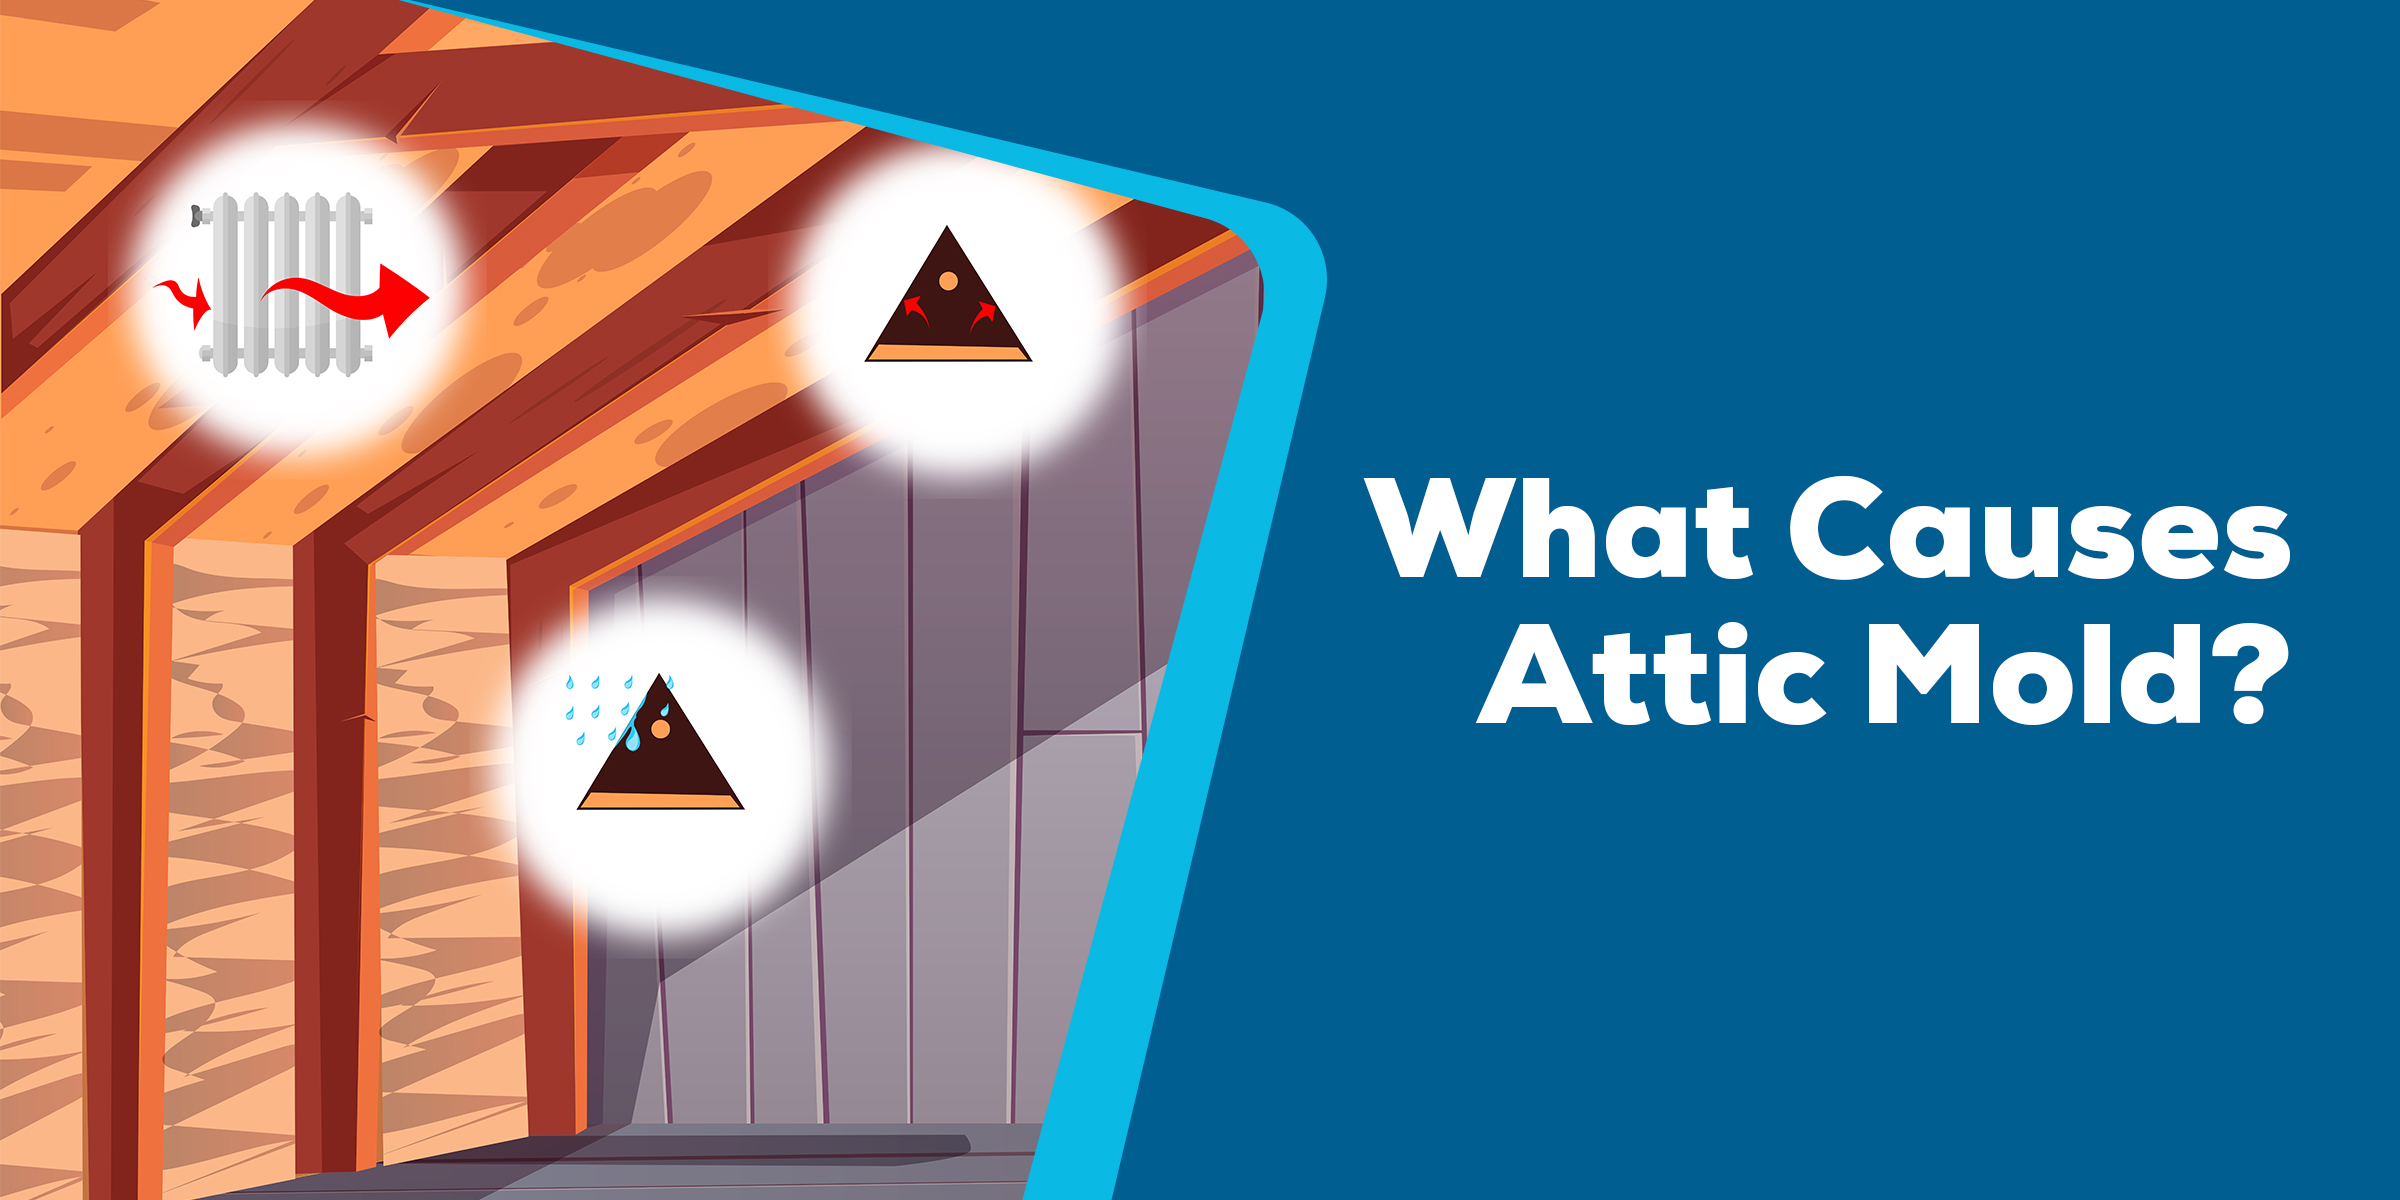 What Causes Attic Mold